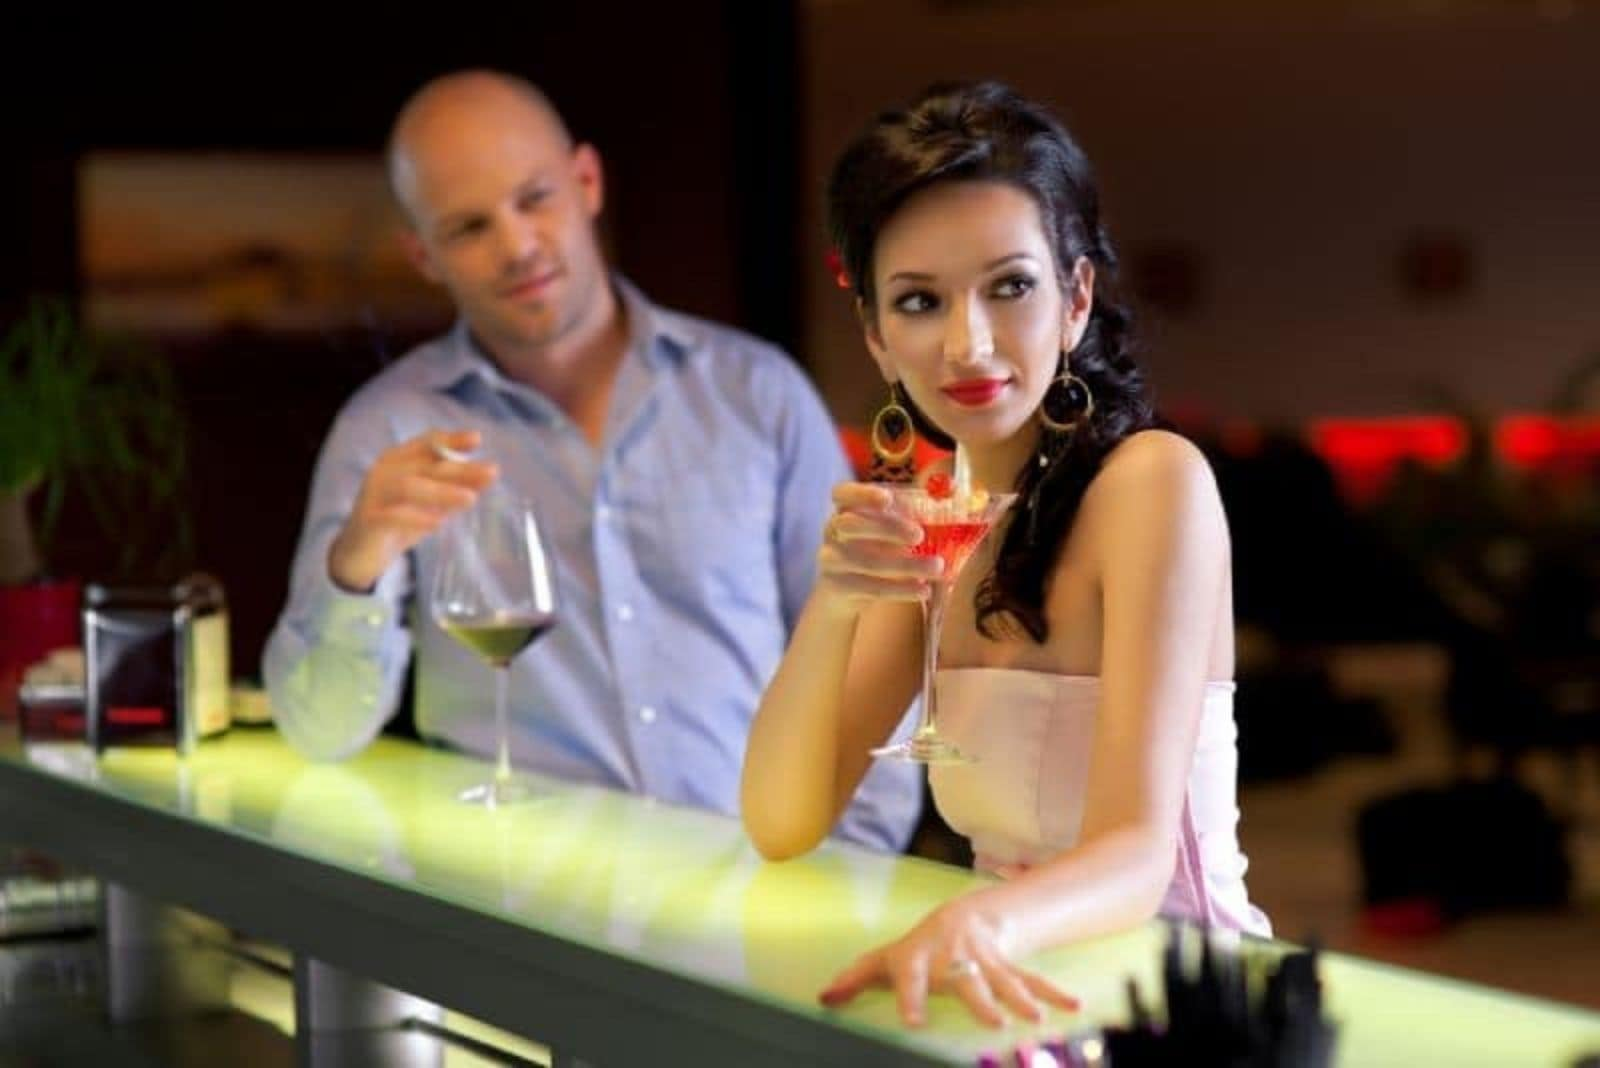 a man drinks wine and looks at a woman